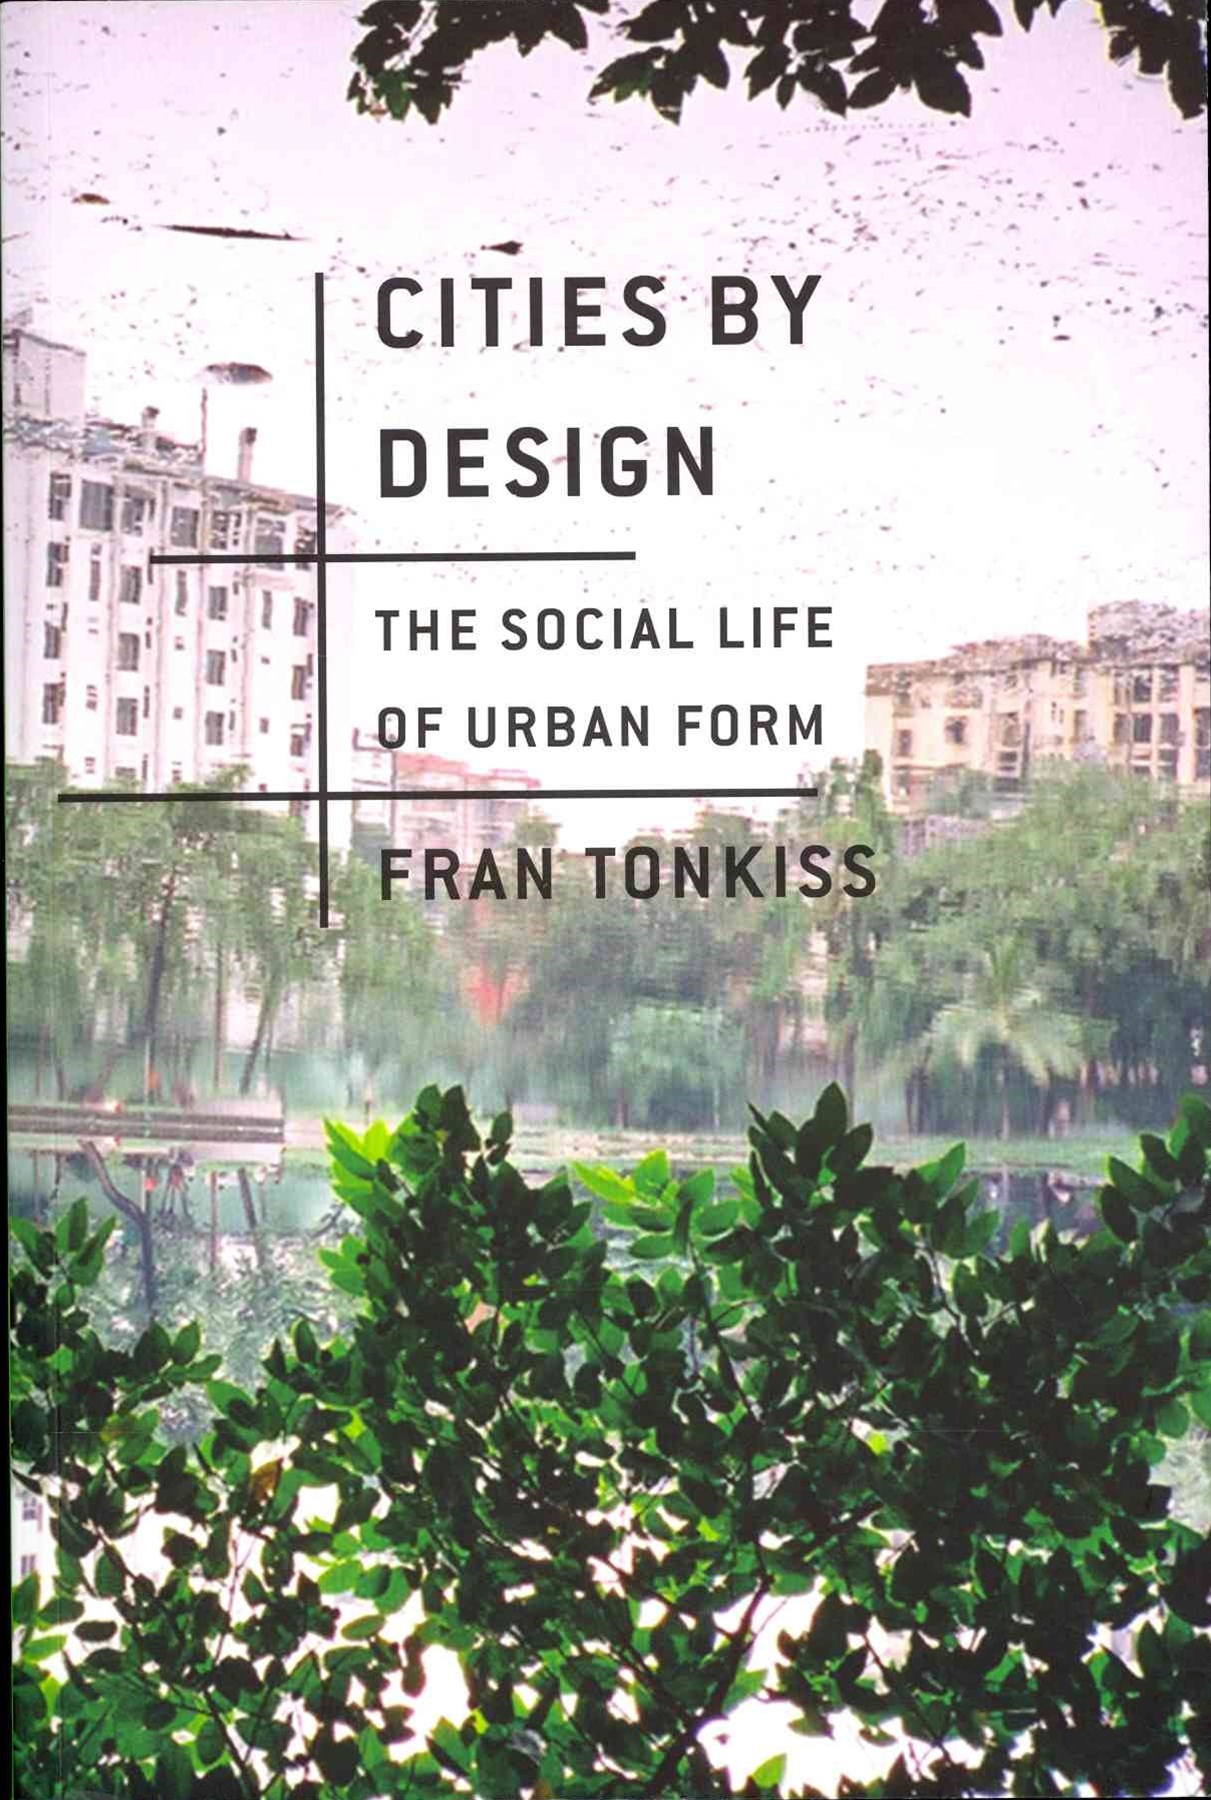 Cities By Design - the Social Life of Urban Form